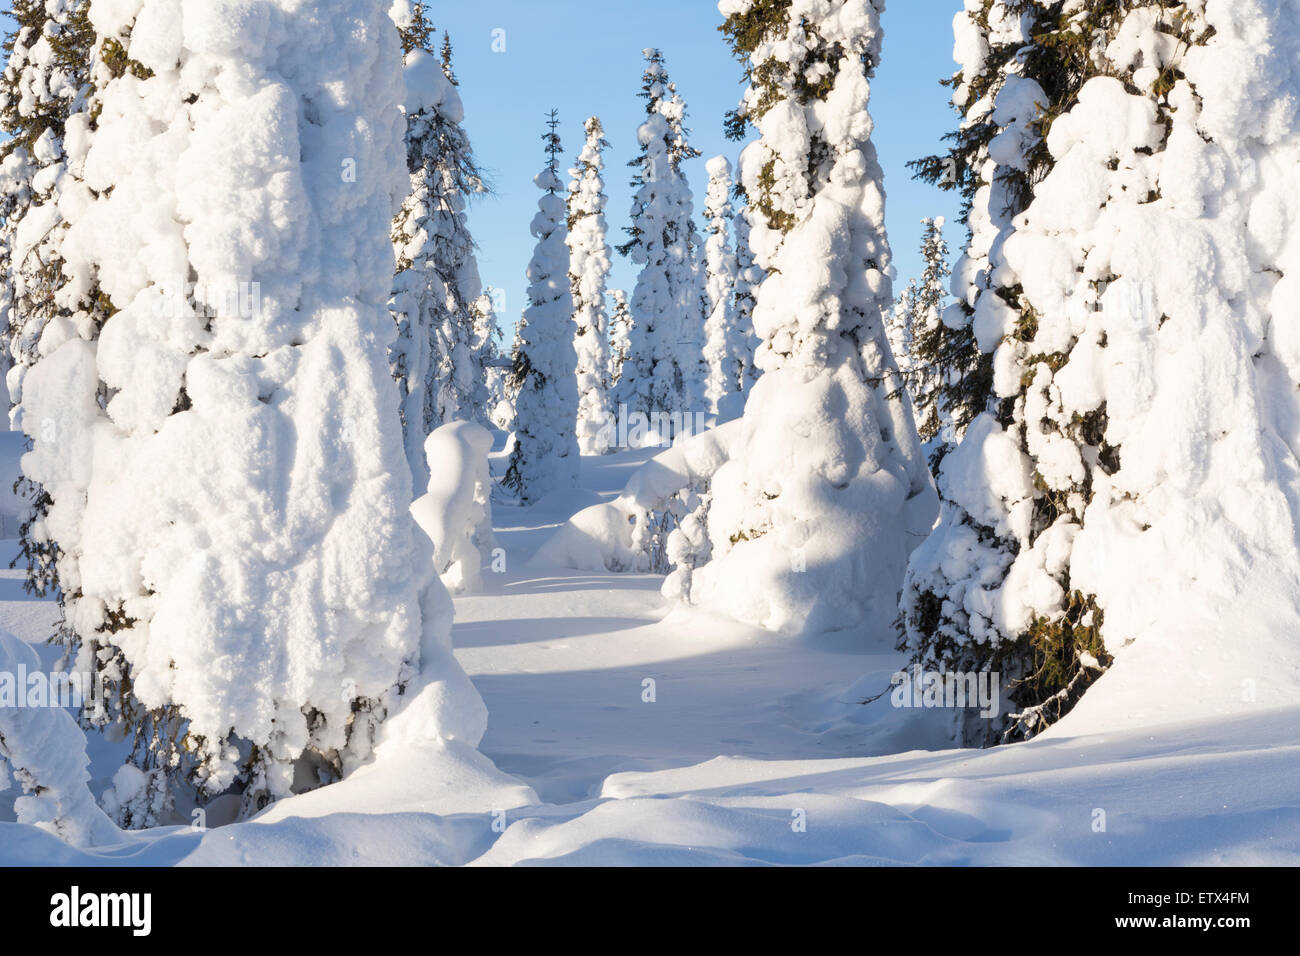 Winter landscape with snowy spruces on mount Hirvas in february in Gällivare in swedish lapland - Stock Image